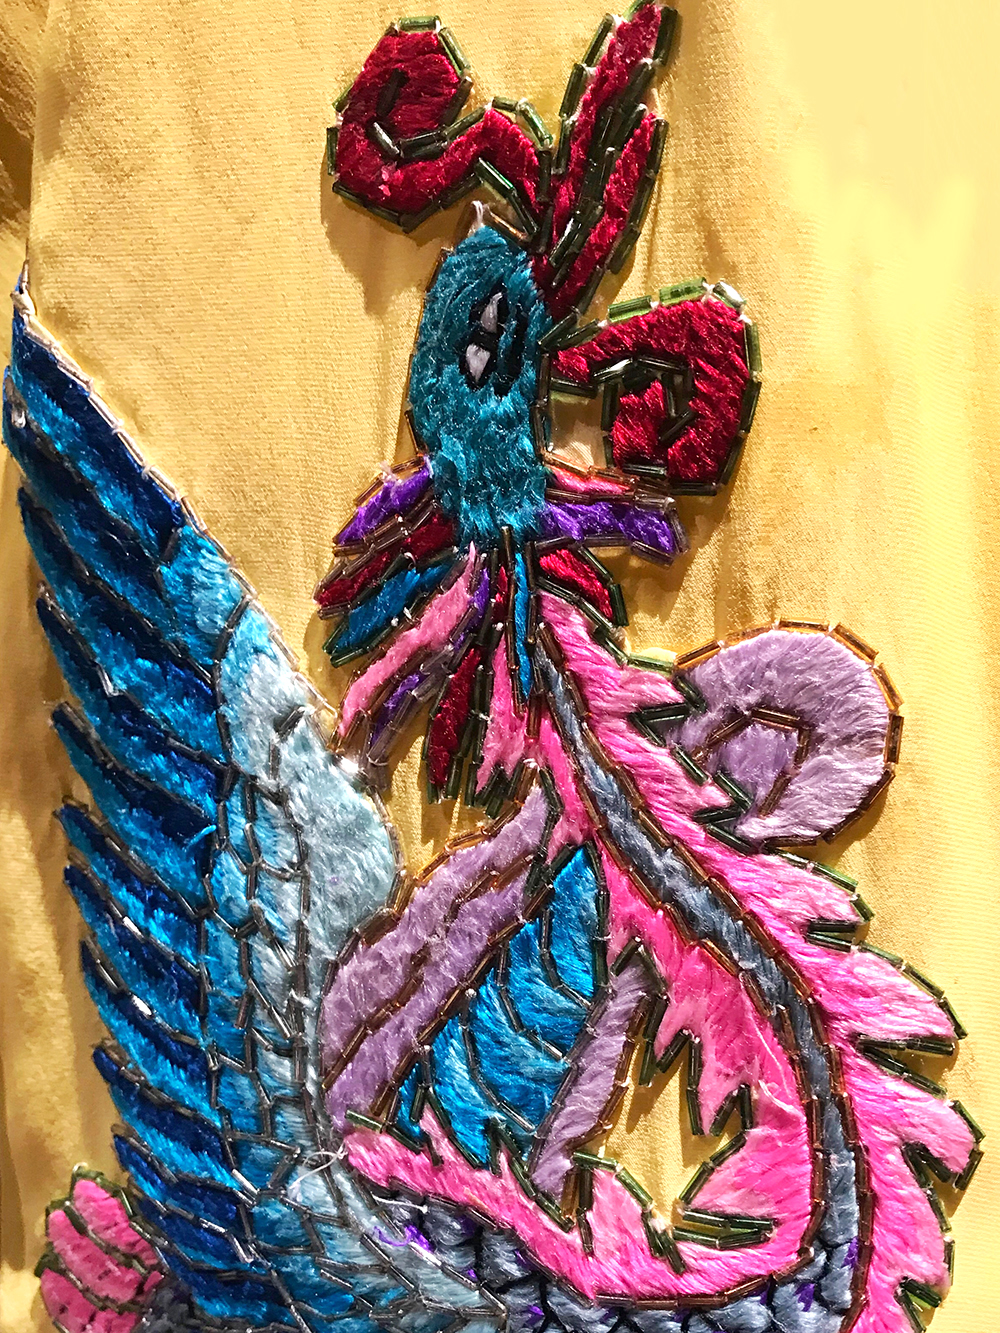 China National Peking Opera Company embroidered silk costumes & backstage tour at Sadler's Wells, October 2018 - London culture blog